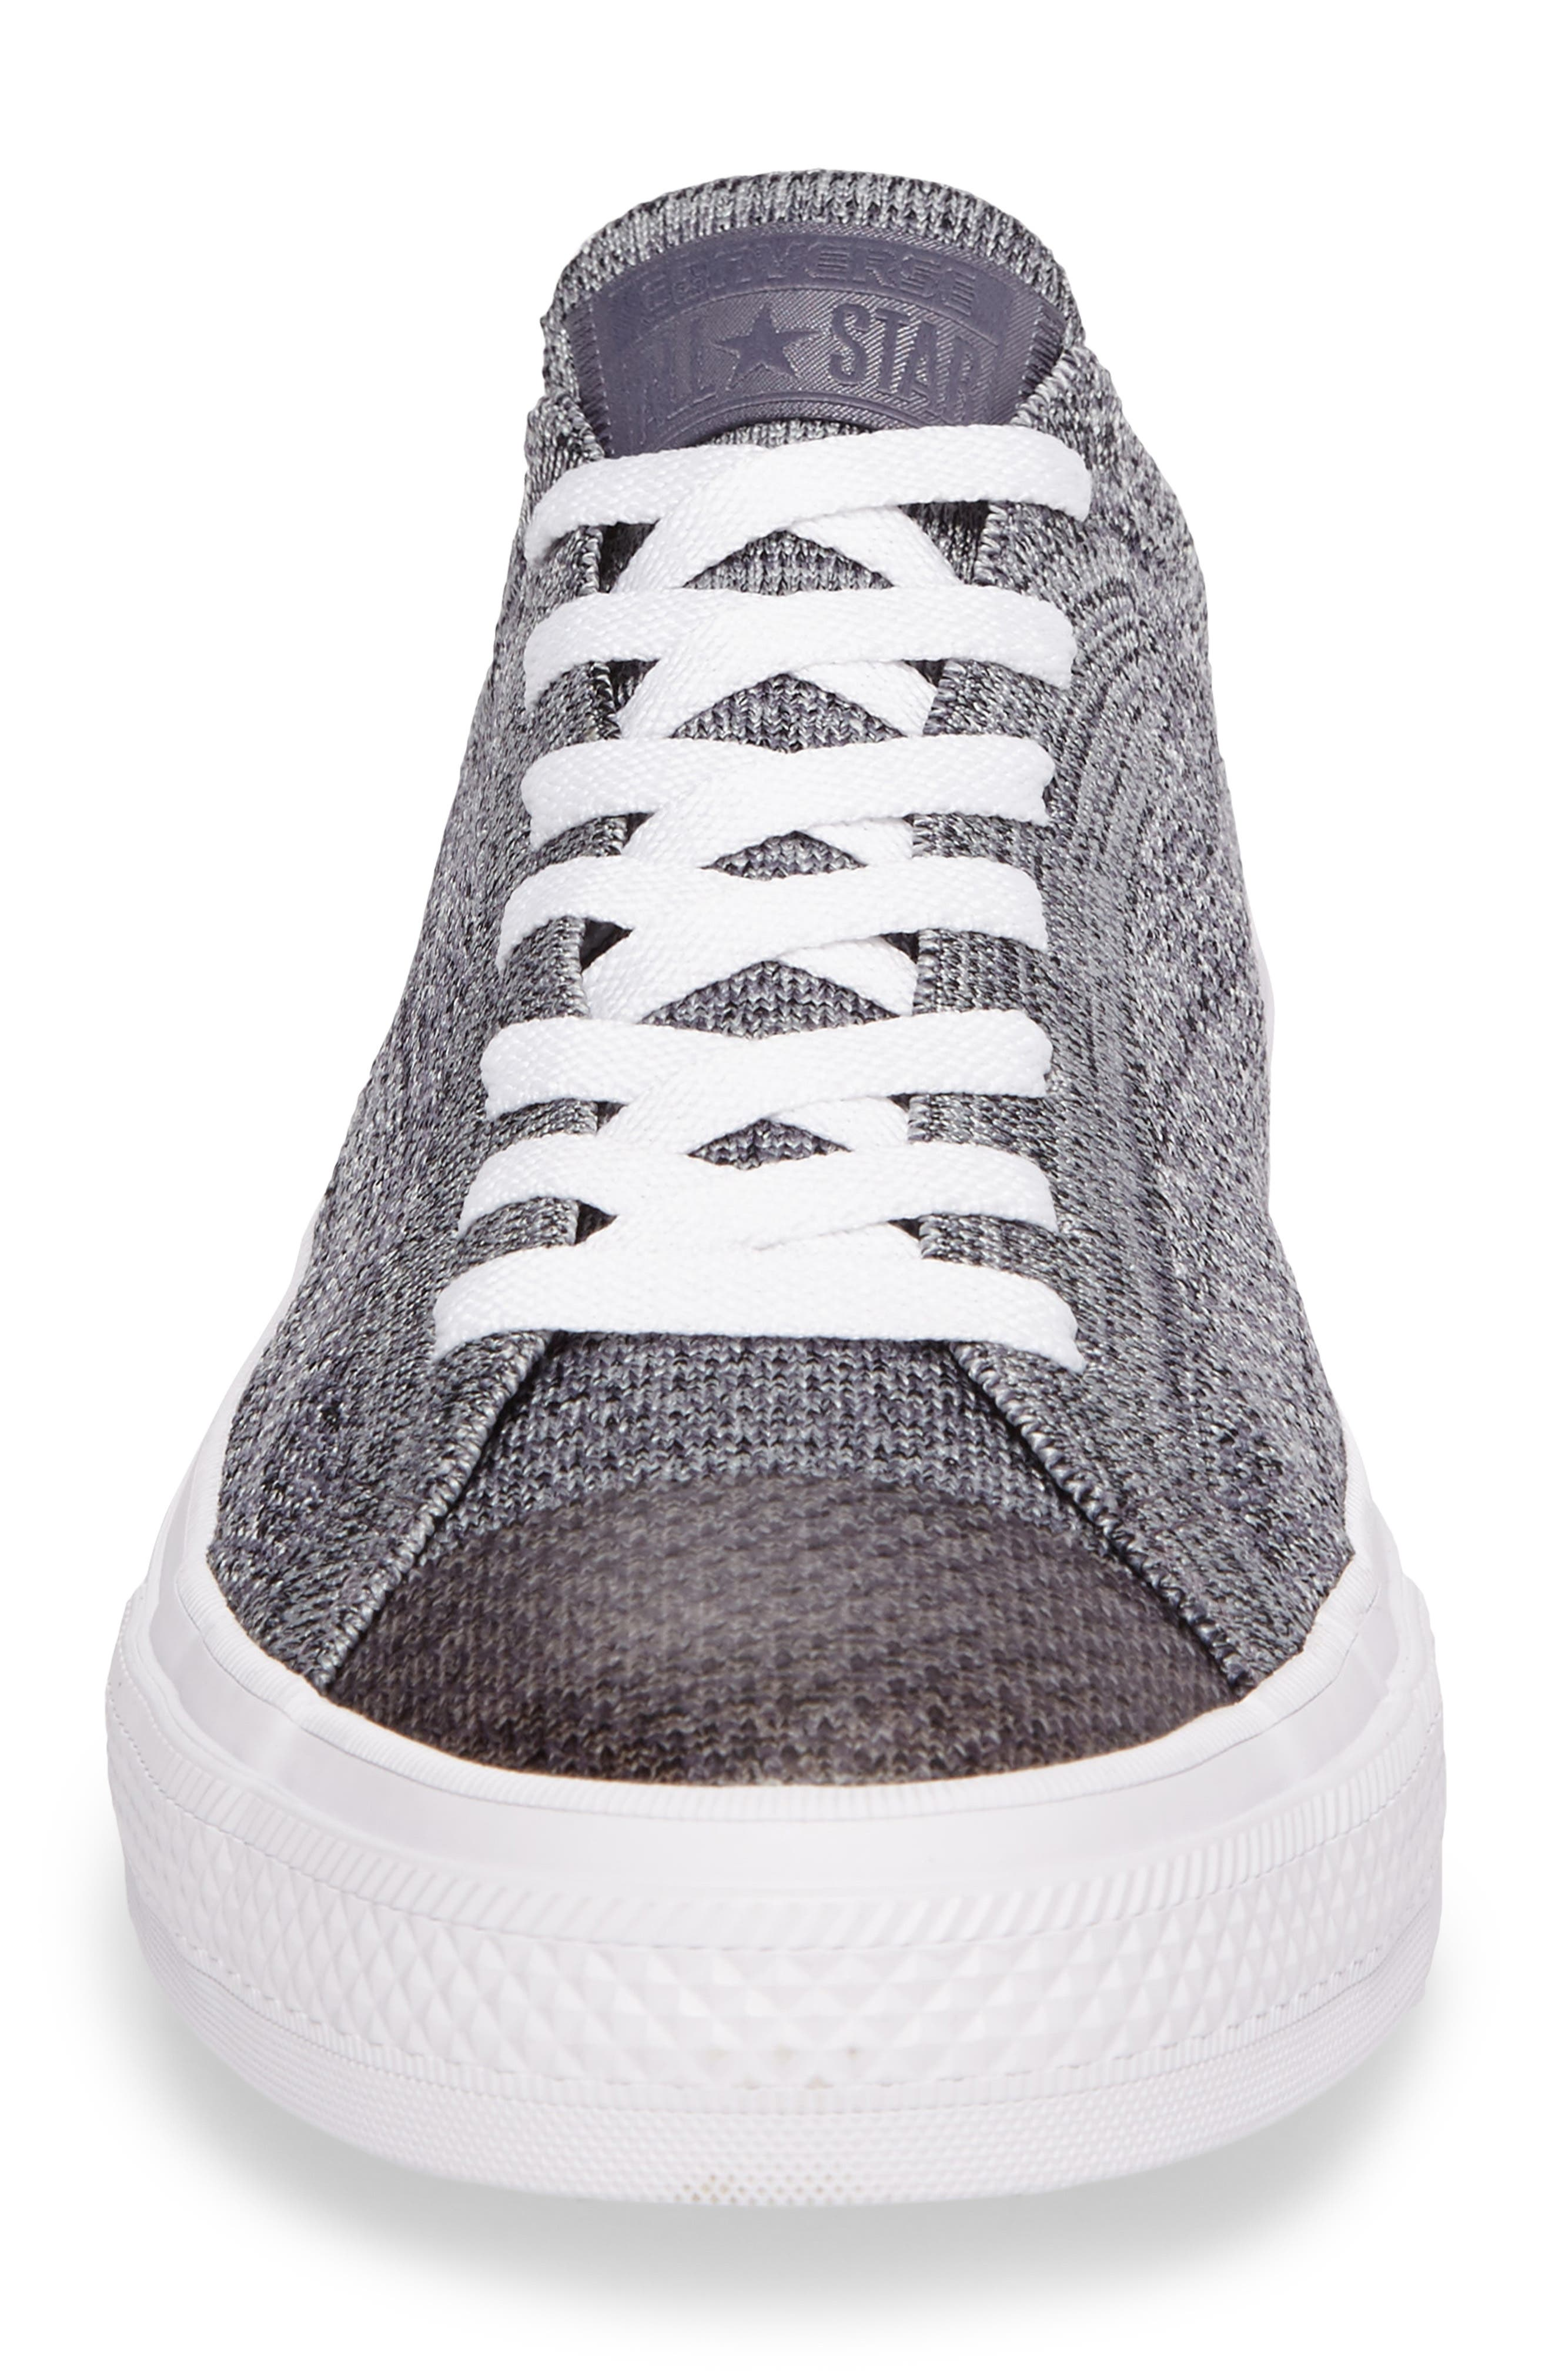 Chuck Taylor<sup>®</sup> All Star<sup>®</sup> Flyknit Sneaker,                             Alternate thumbnail 4, color,                             027